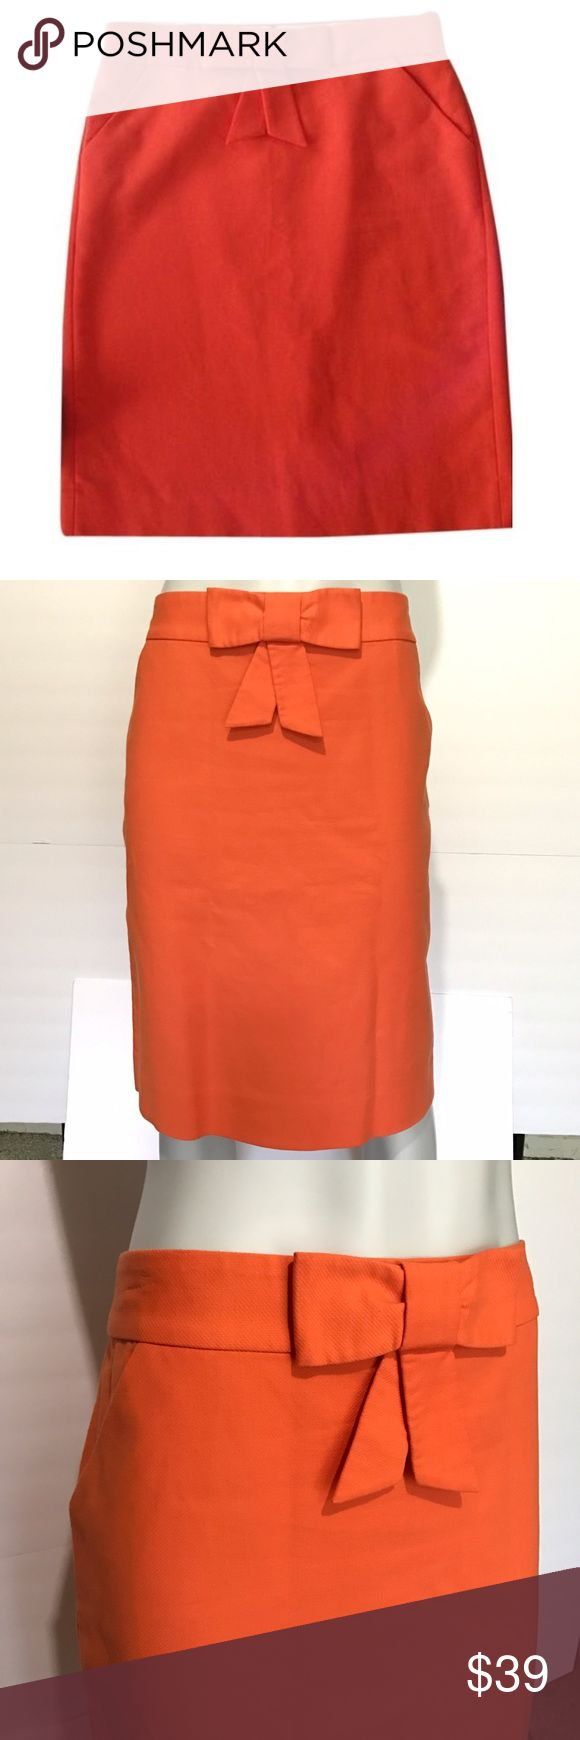 {j. crew} double serge bow pencil skirt Orange pencil skirt with bow on front. Zips up in back. Has two pockets. Stylish, bright skirt for professional work settings. J. Crew Skirts Pencil